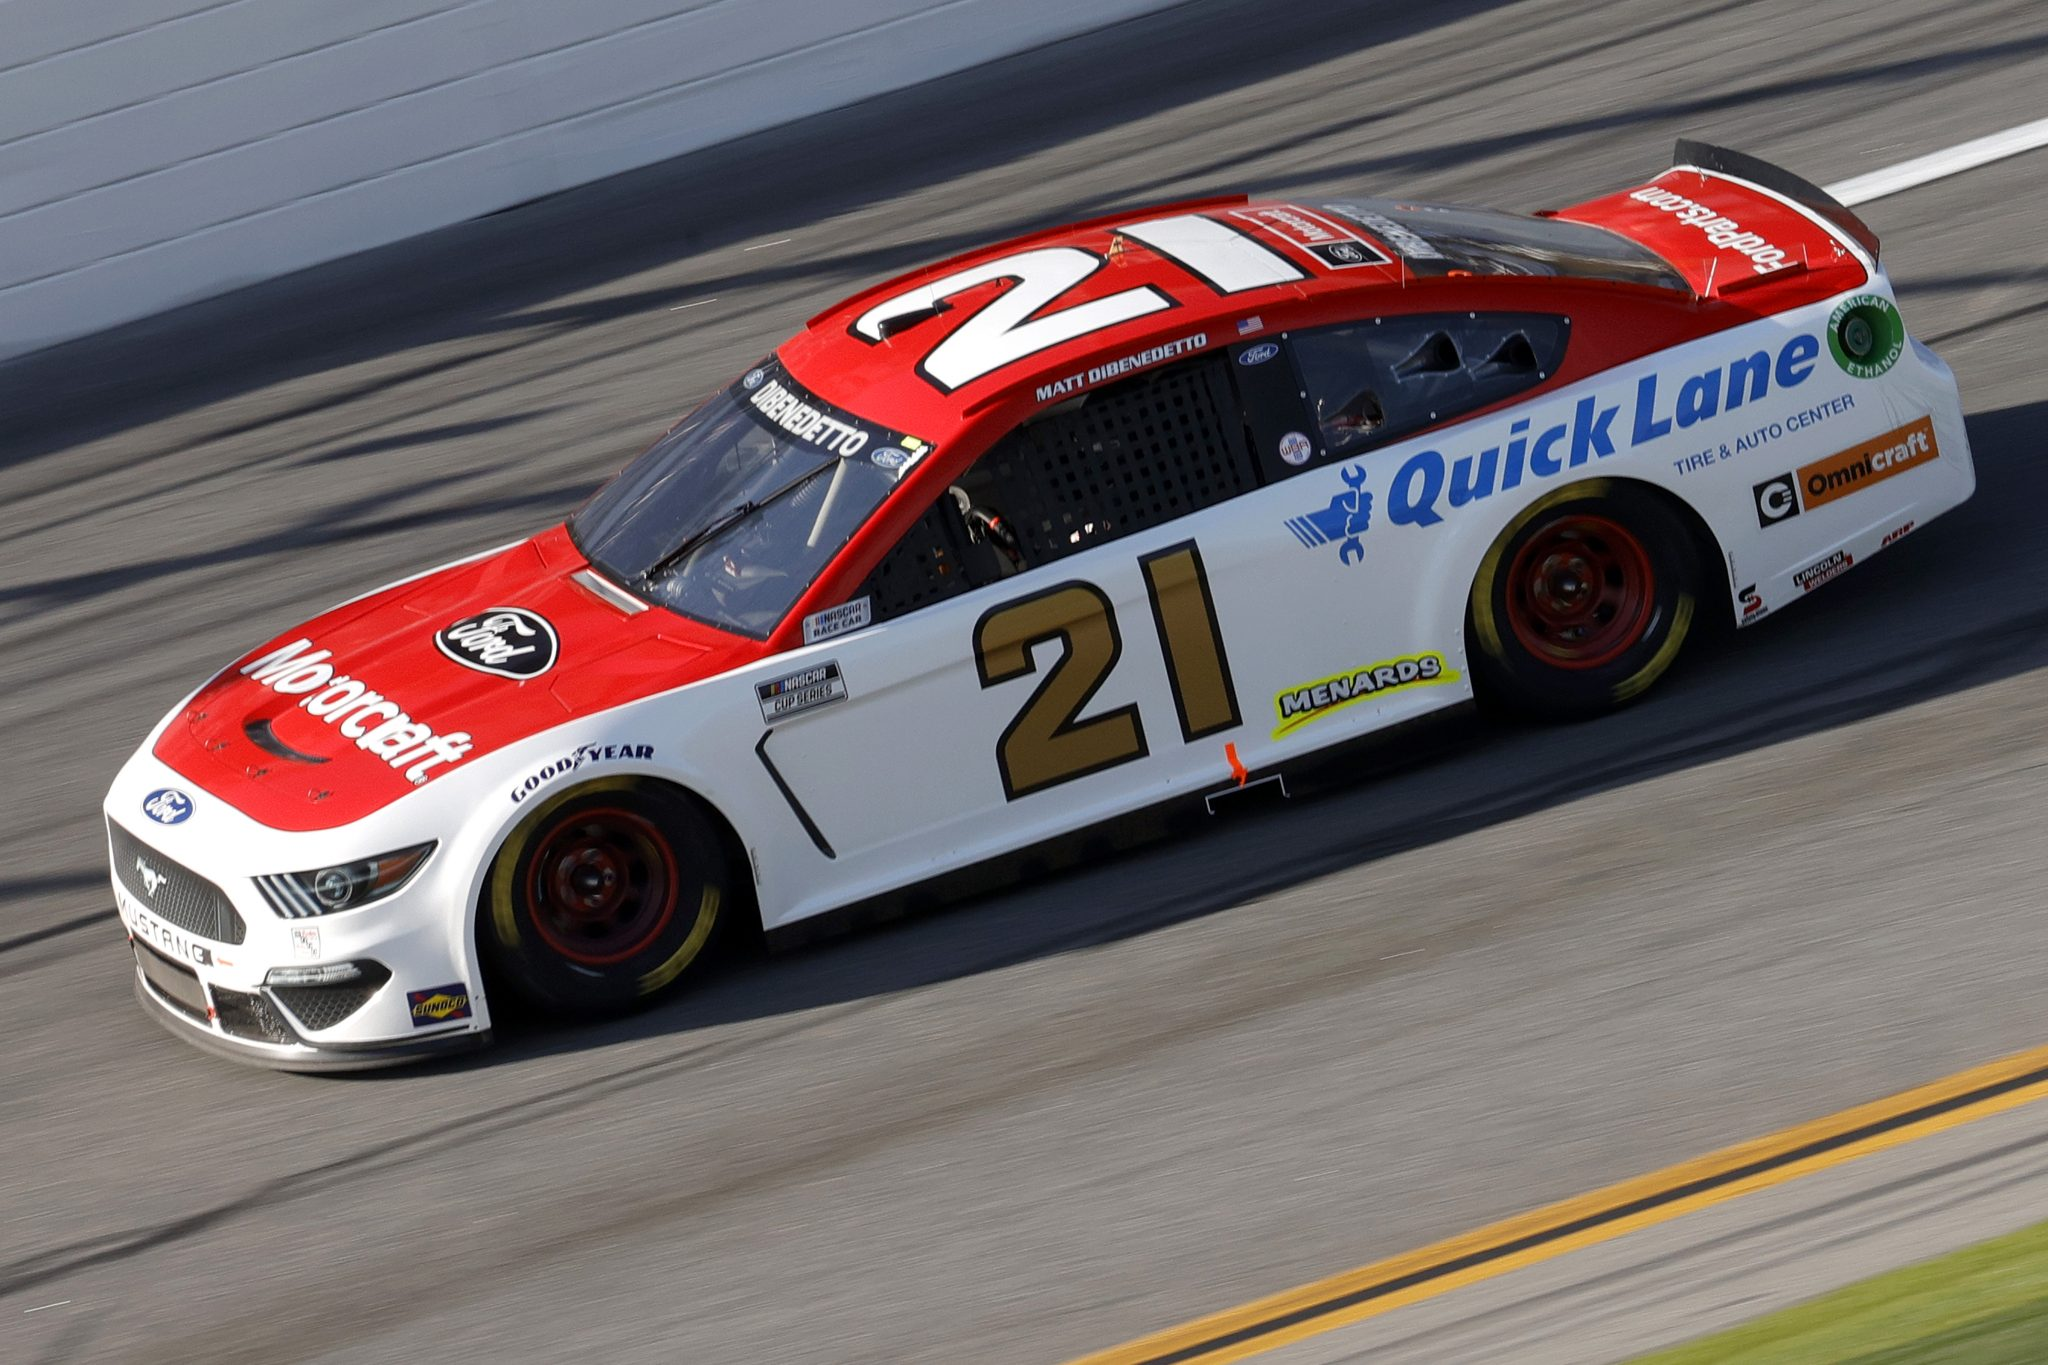 DAYTONA BEACH, FLORIDA - FEBRUARY 21: Matt DiBenedetto, driver of the #21 Motorcraft/Quick Lane Ford, drives during the NASCAR Cup Series O'Reilly Auto Parts 253 at Daytona International Speedway on February 21, 2021 in Daytona Beach, Florida. (Photo by Chris Graythen/Getty Images) | Getty Images